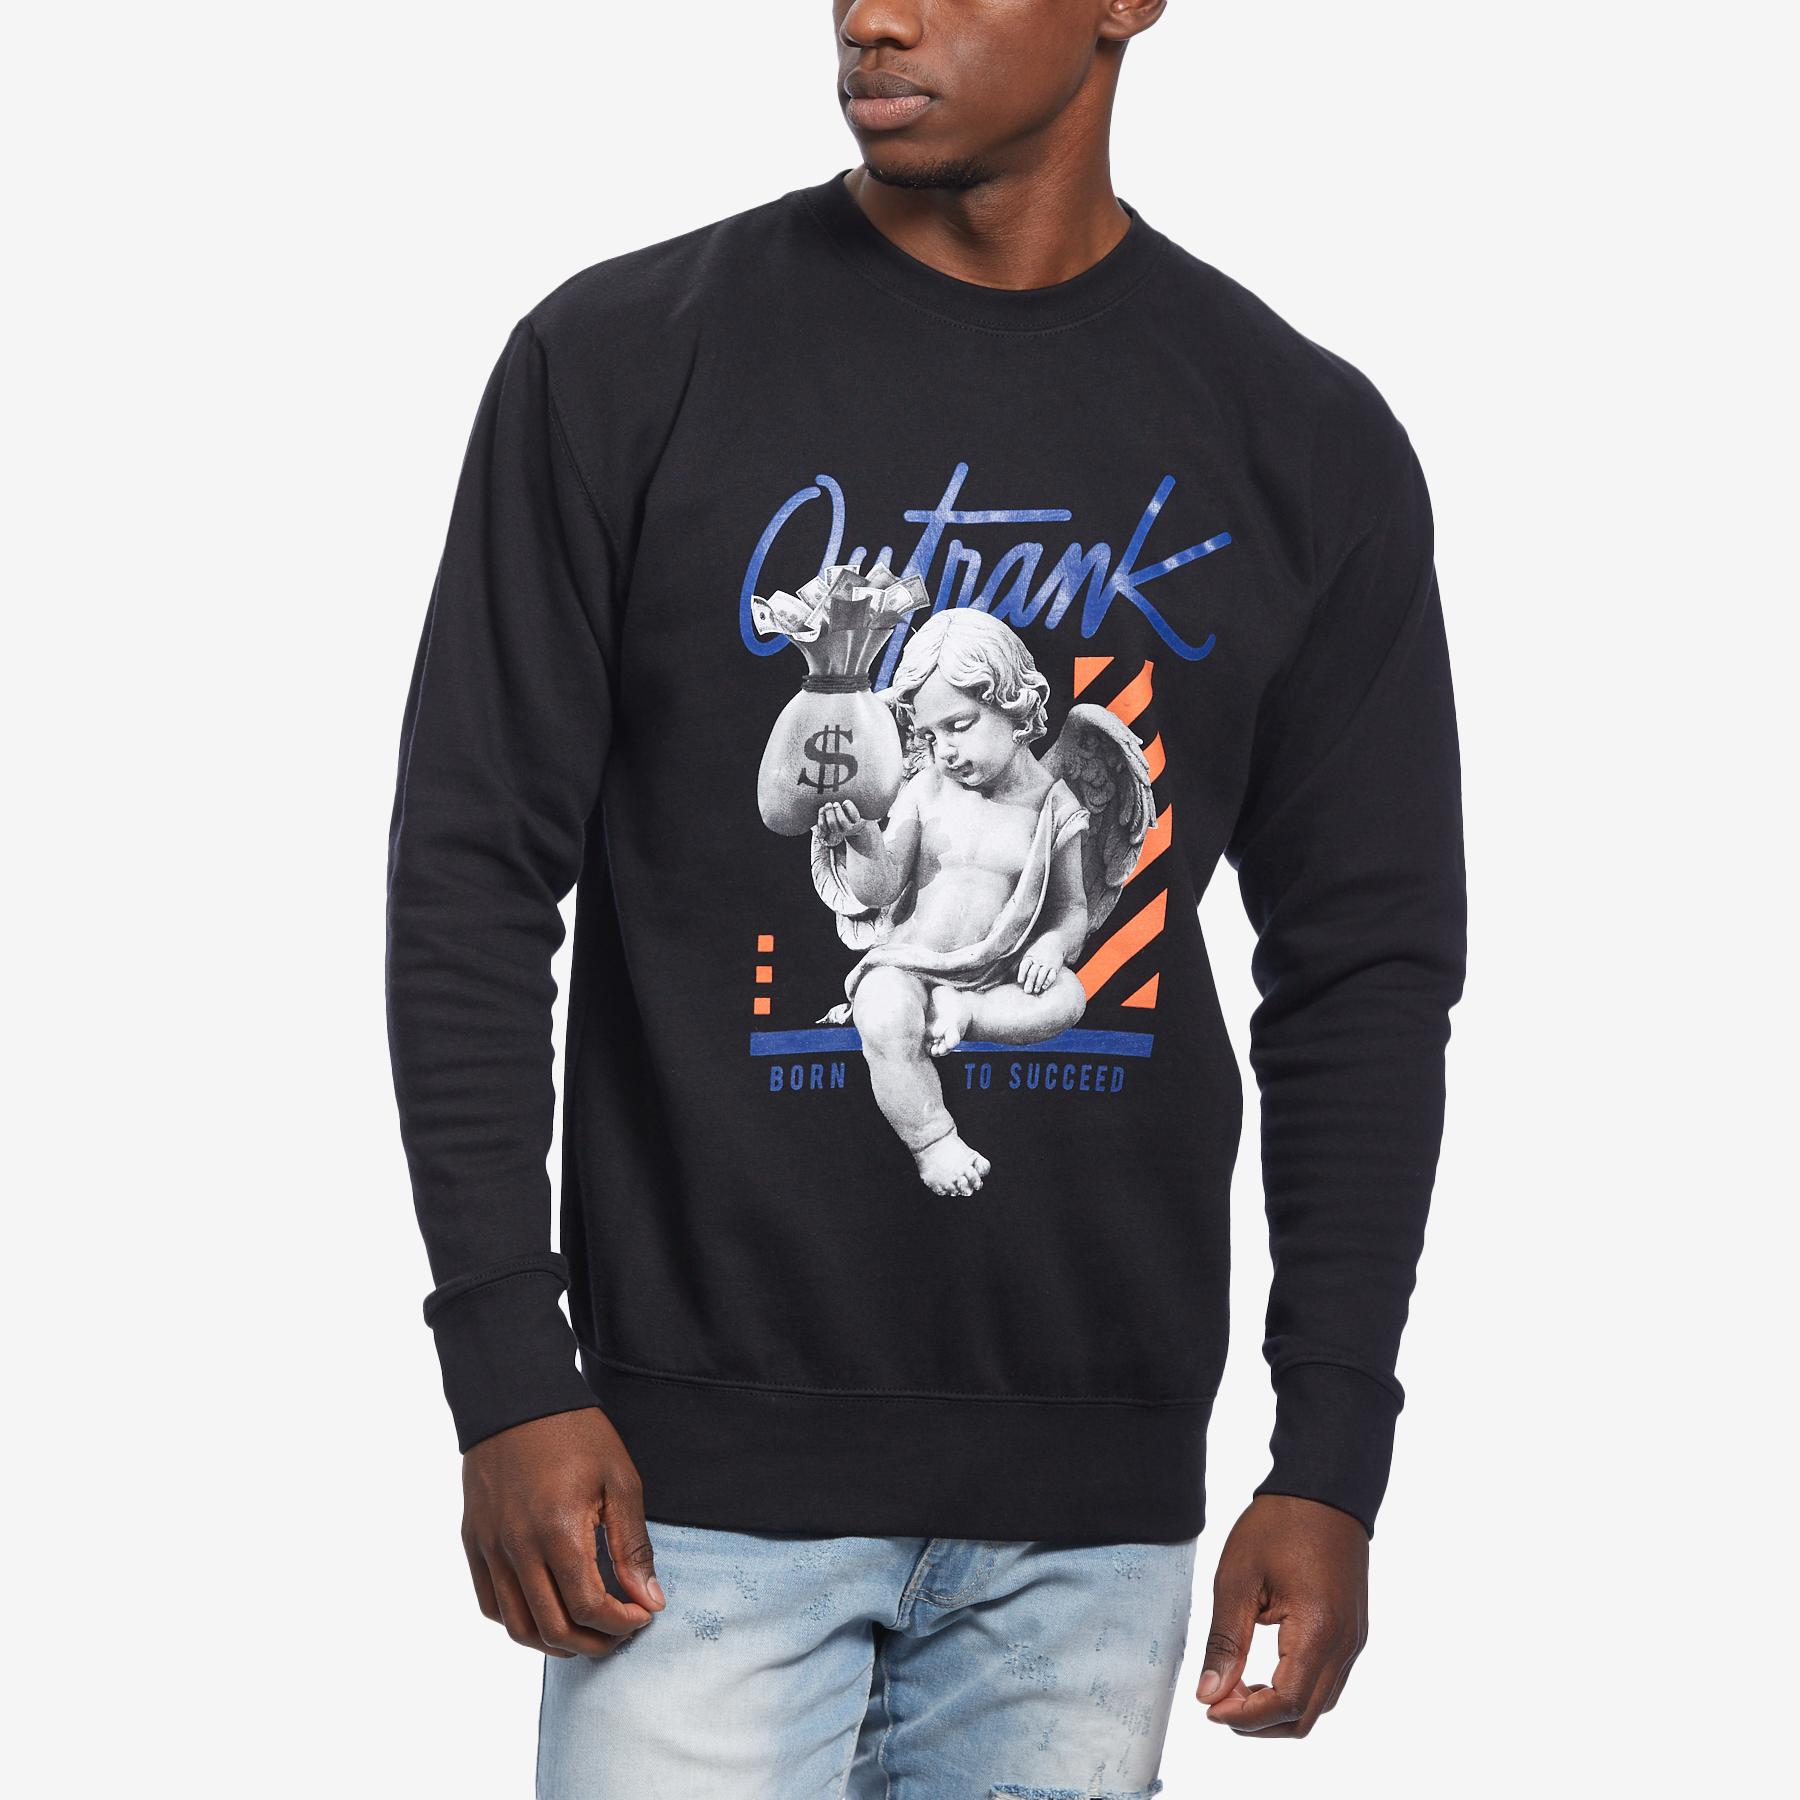 Born To Succeed Sweatshirt